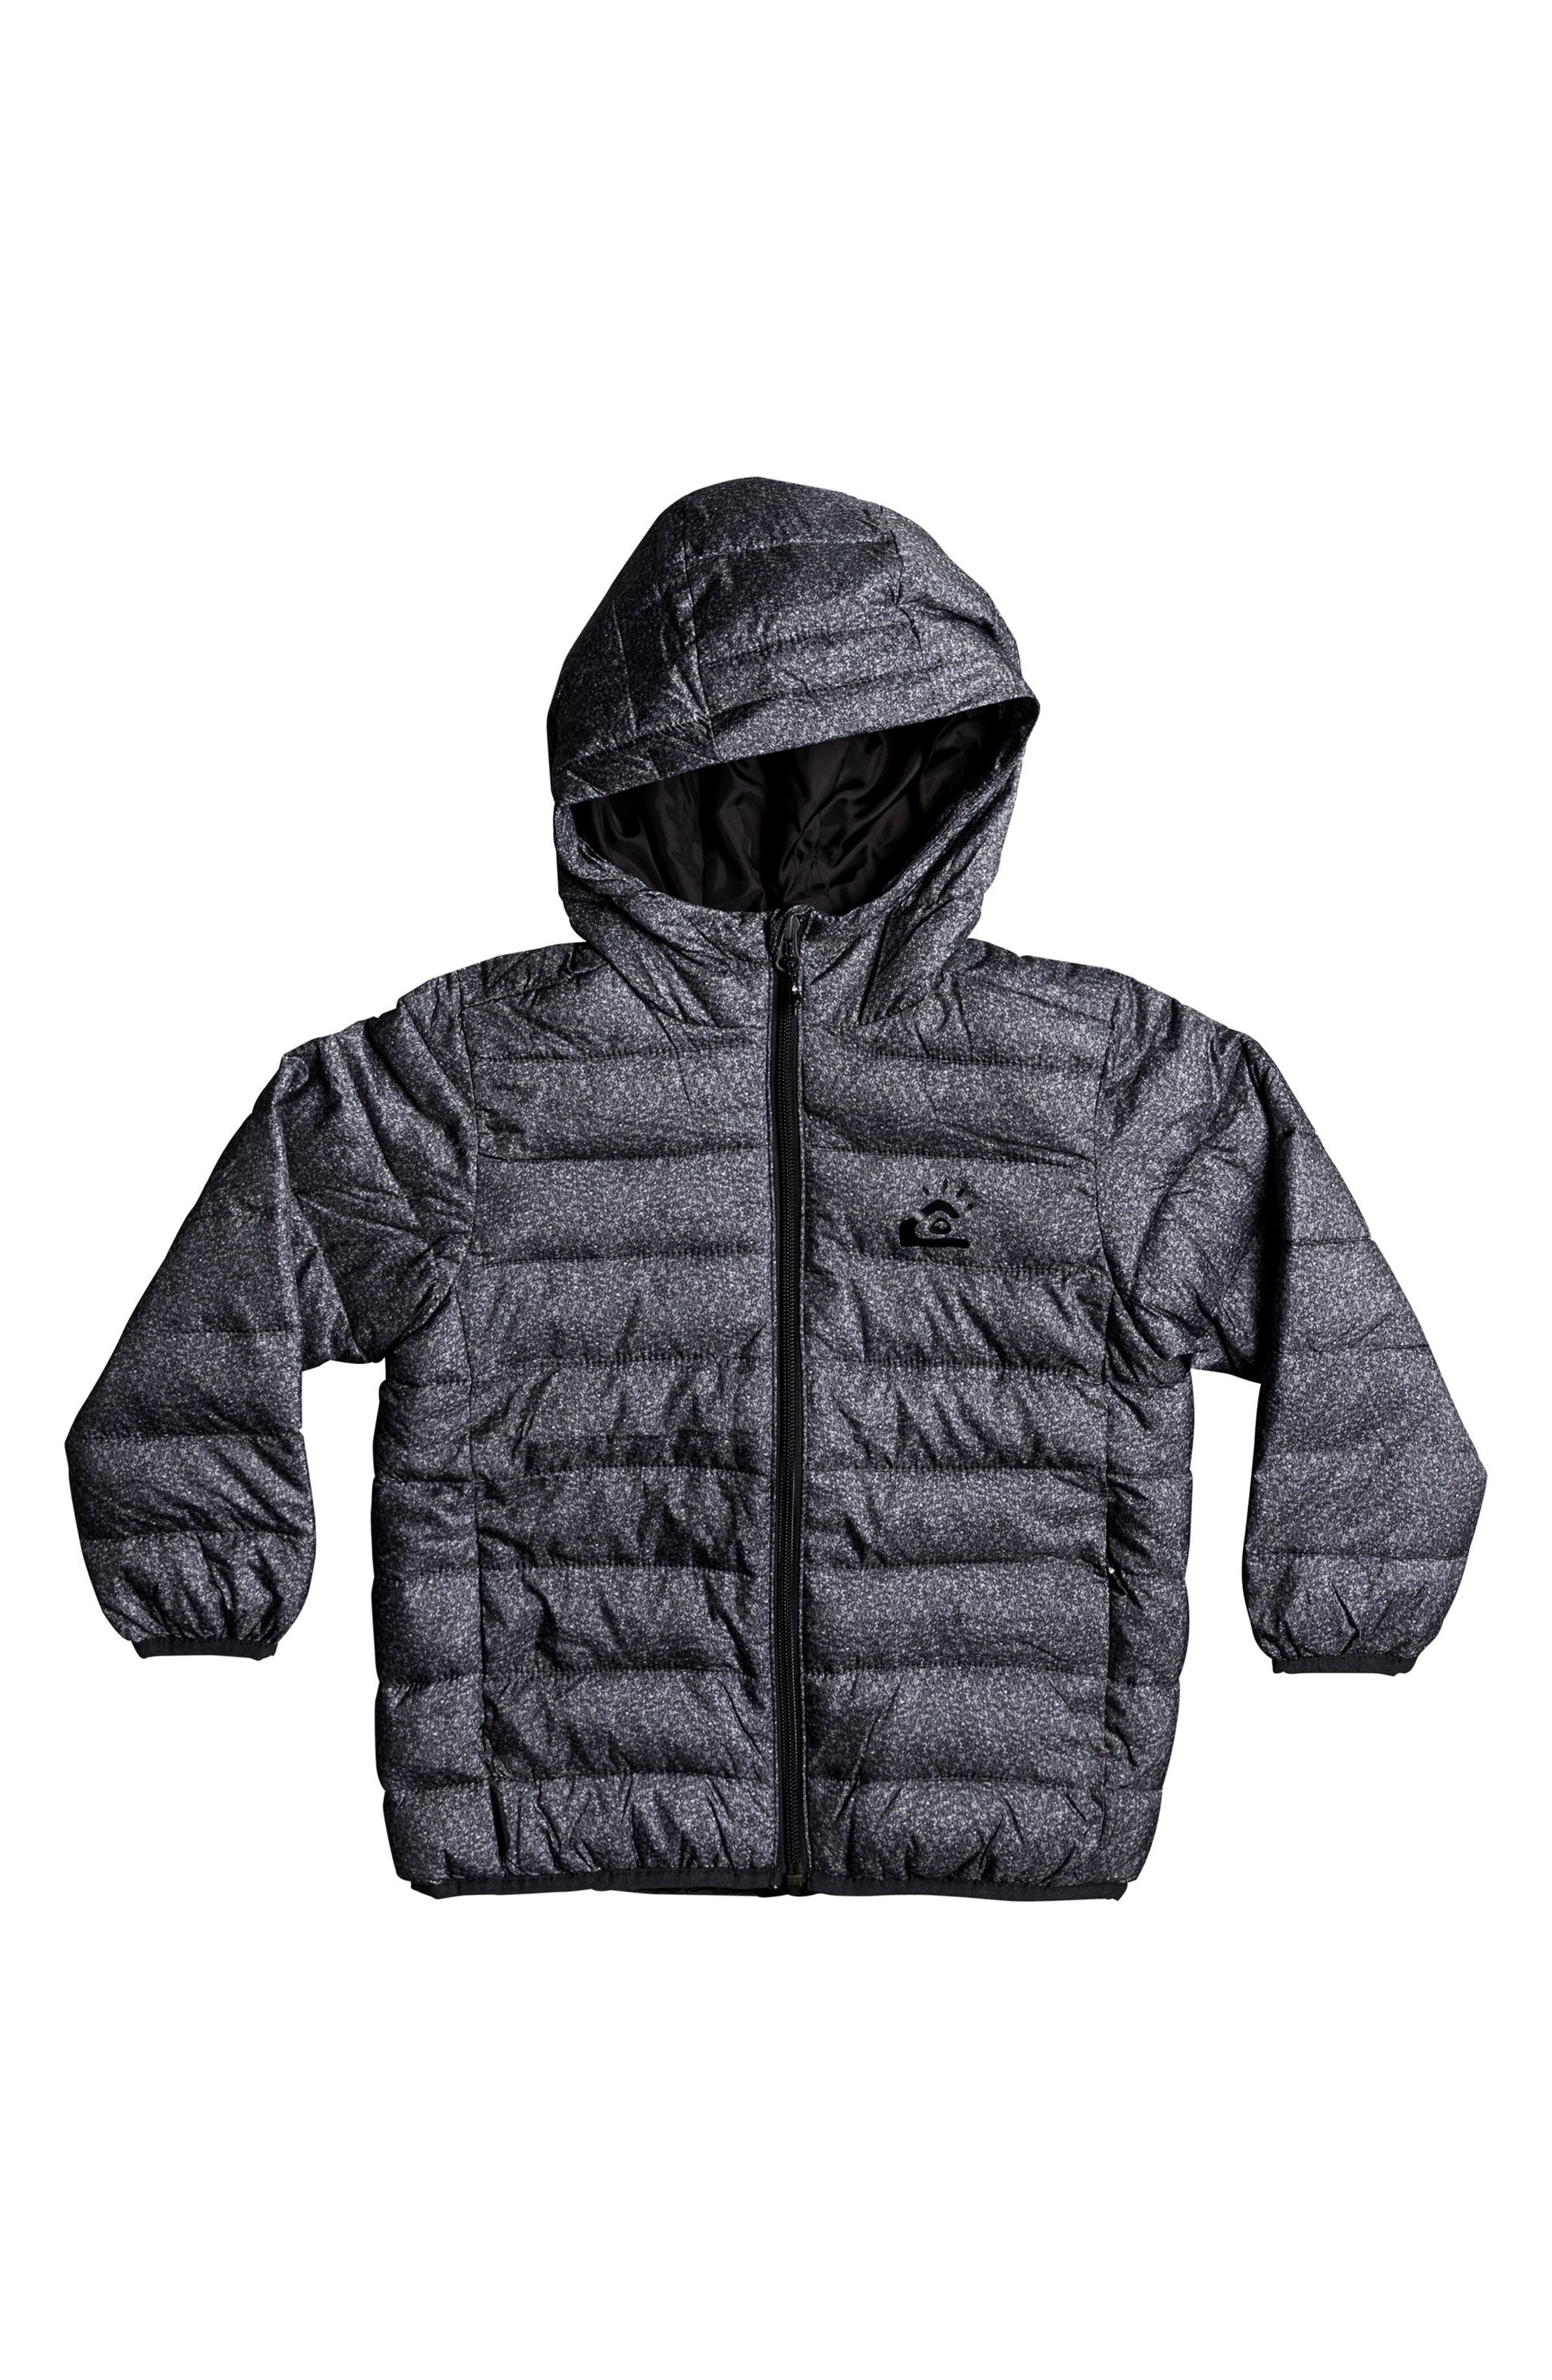 Quicksilver Scaly Water-Resistant Hooded Puffer Jacket,                             Main thumbnail 1, color,                             020